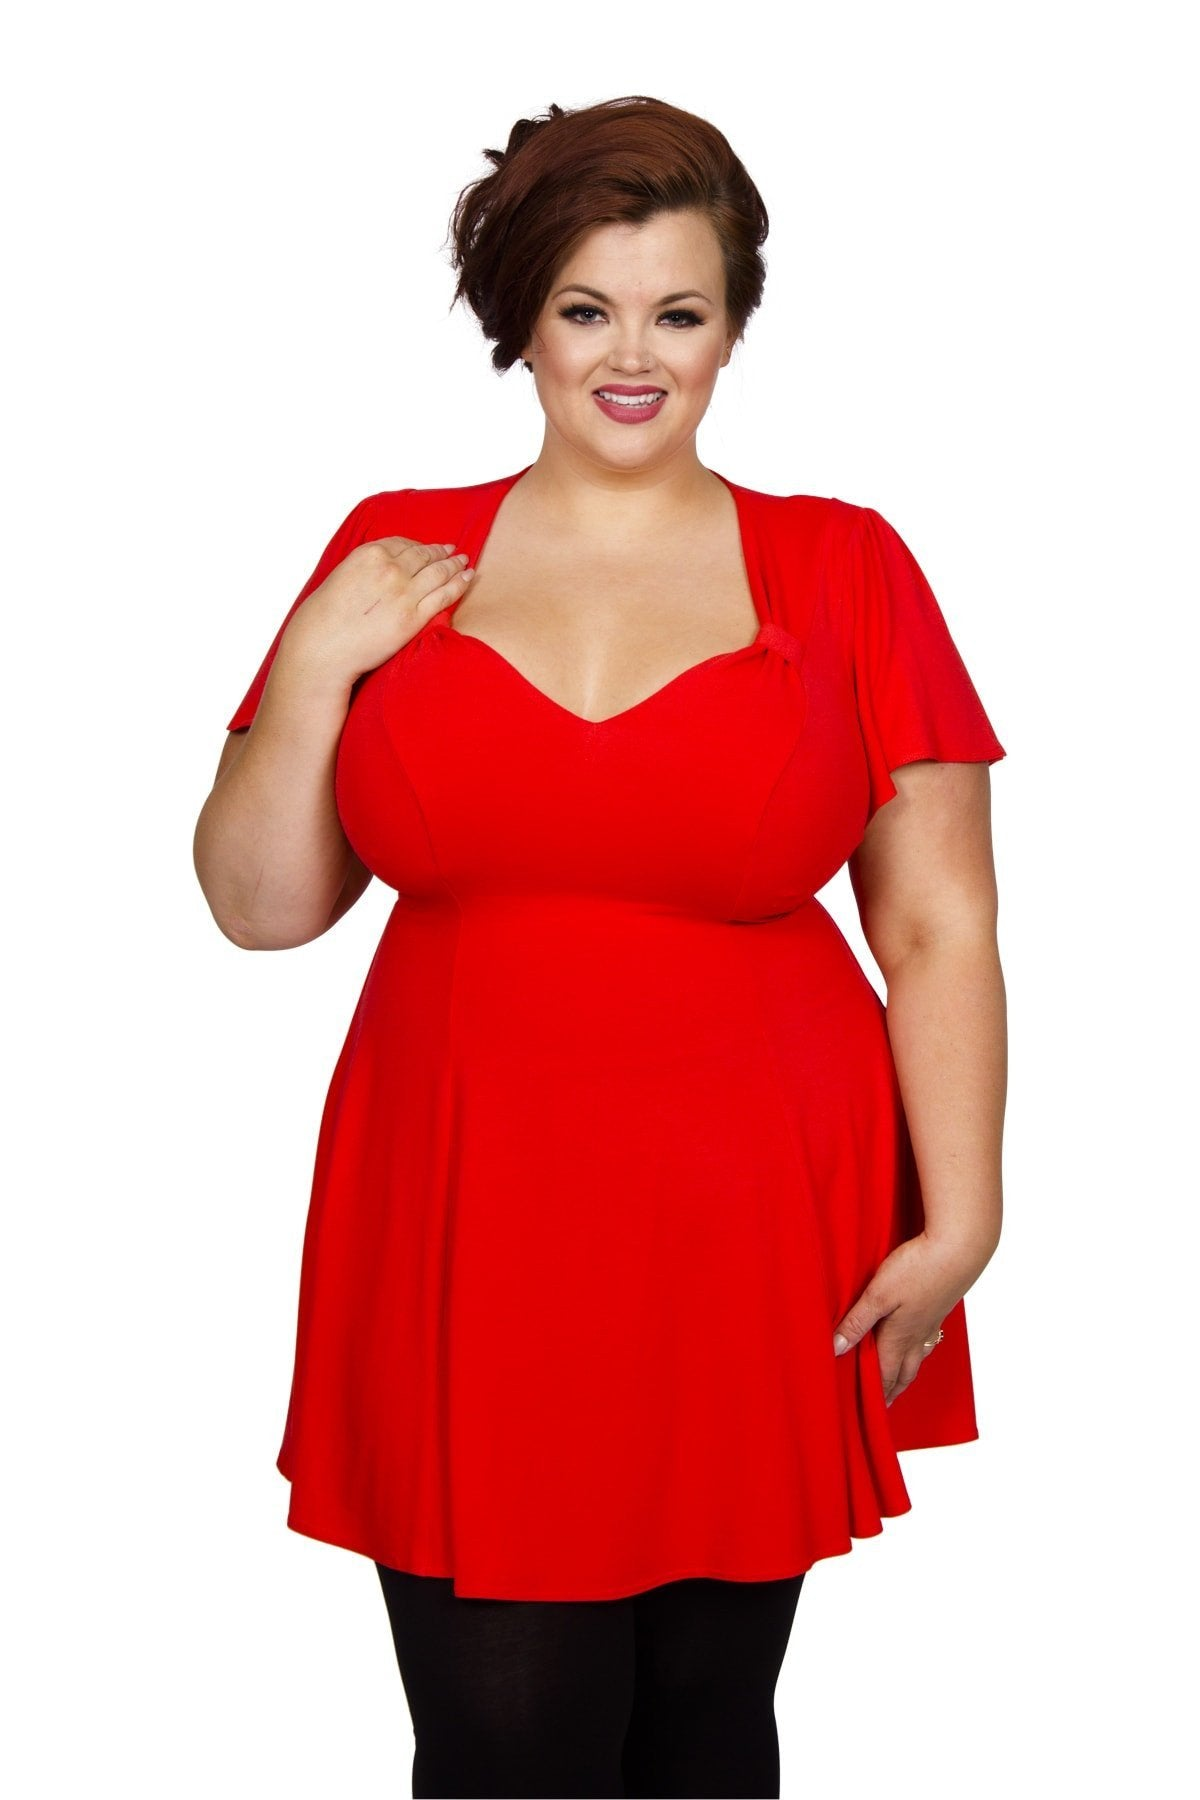 Vintage Style Maternity Clothes Fit  Flare Tunic - Paprika Red  14 �30.00 AT vintagedancer.com